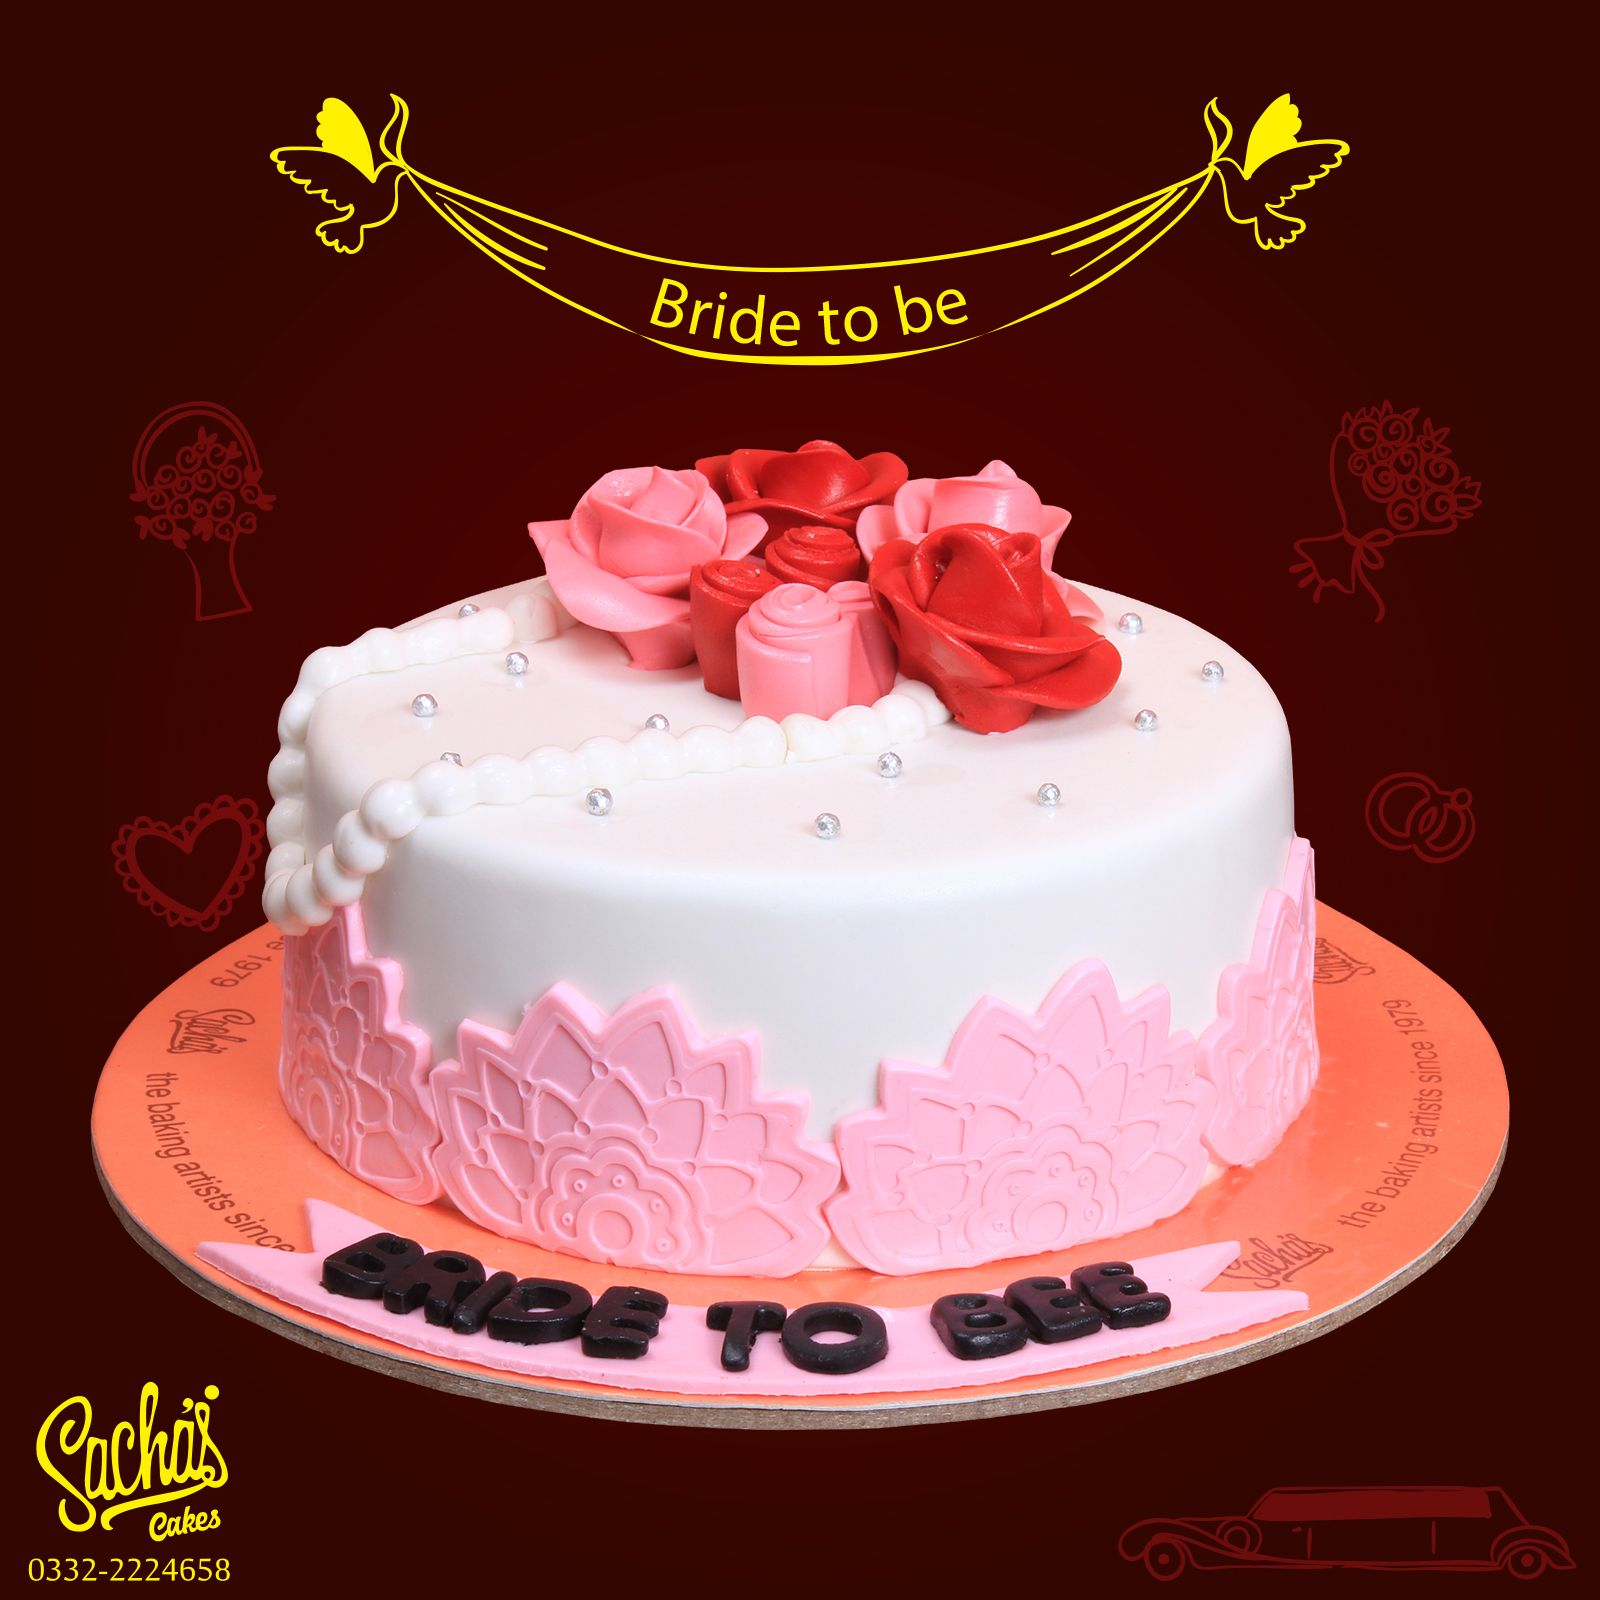 Bride To Be Cake For Brides Sachas Cakes